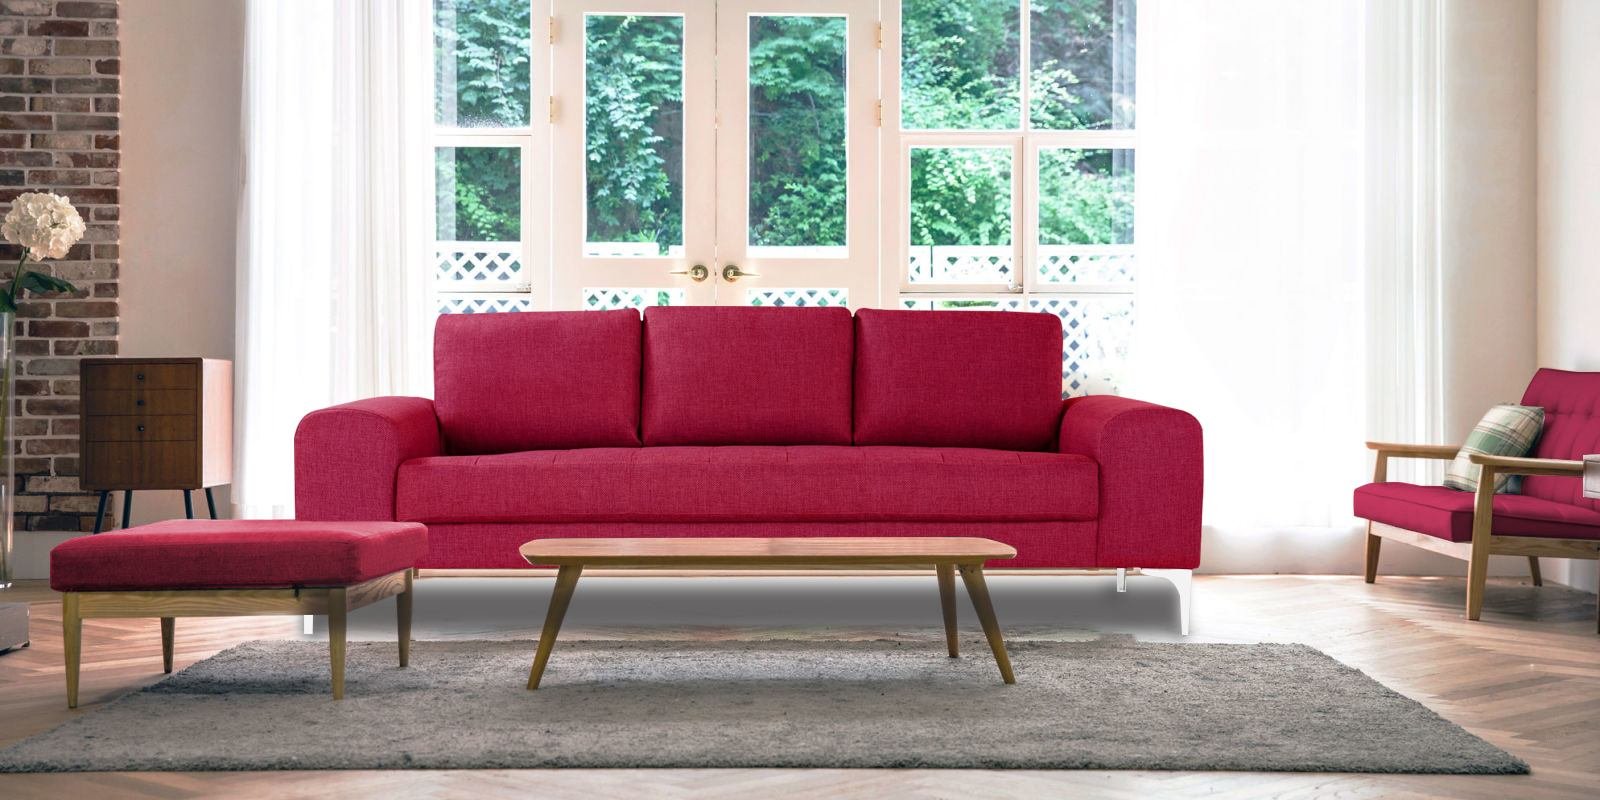 Stunning Three Seater Sofa In Pink Colour